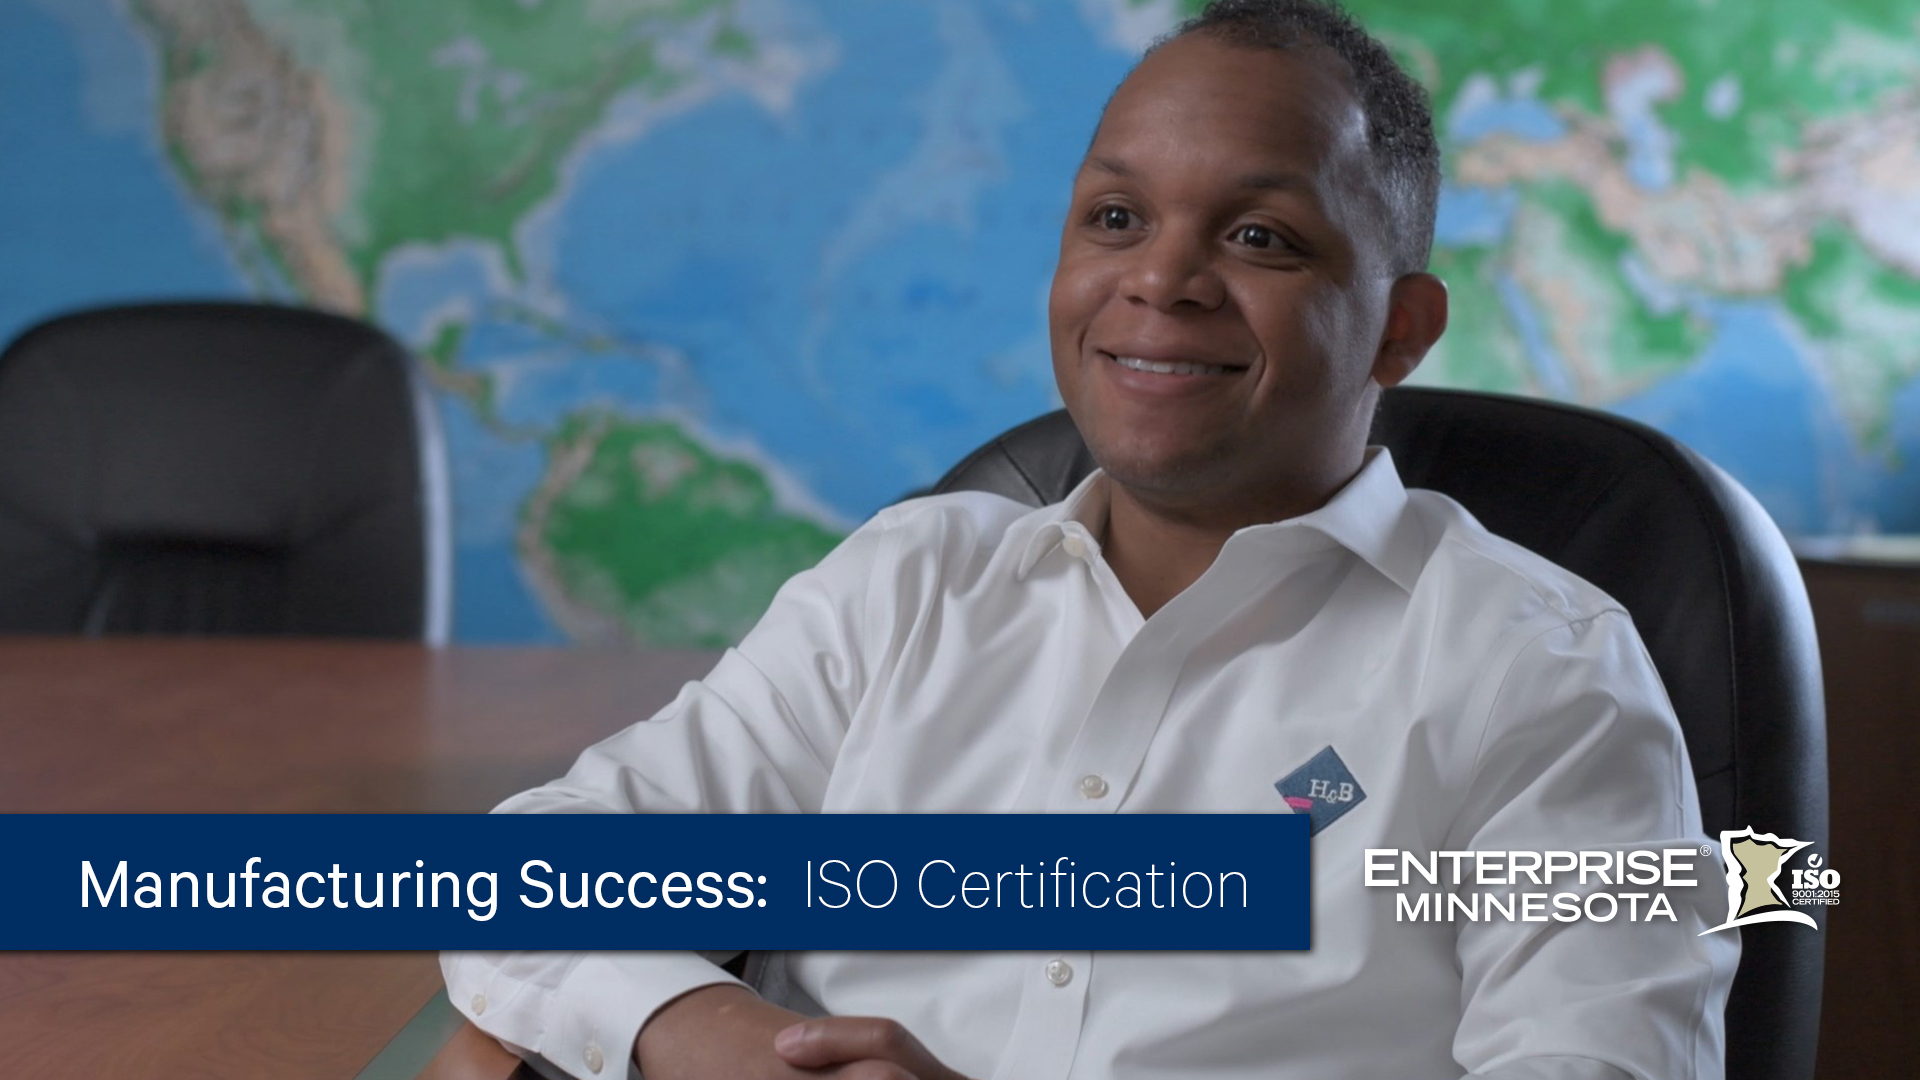 ISO Certification with Jashan Eison of H&B Elevators